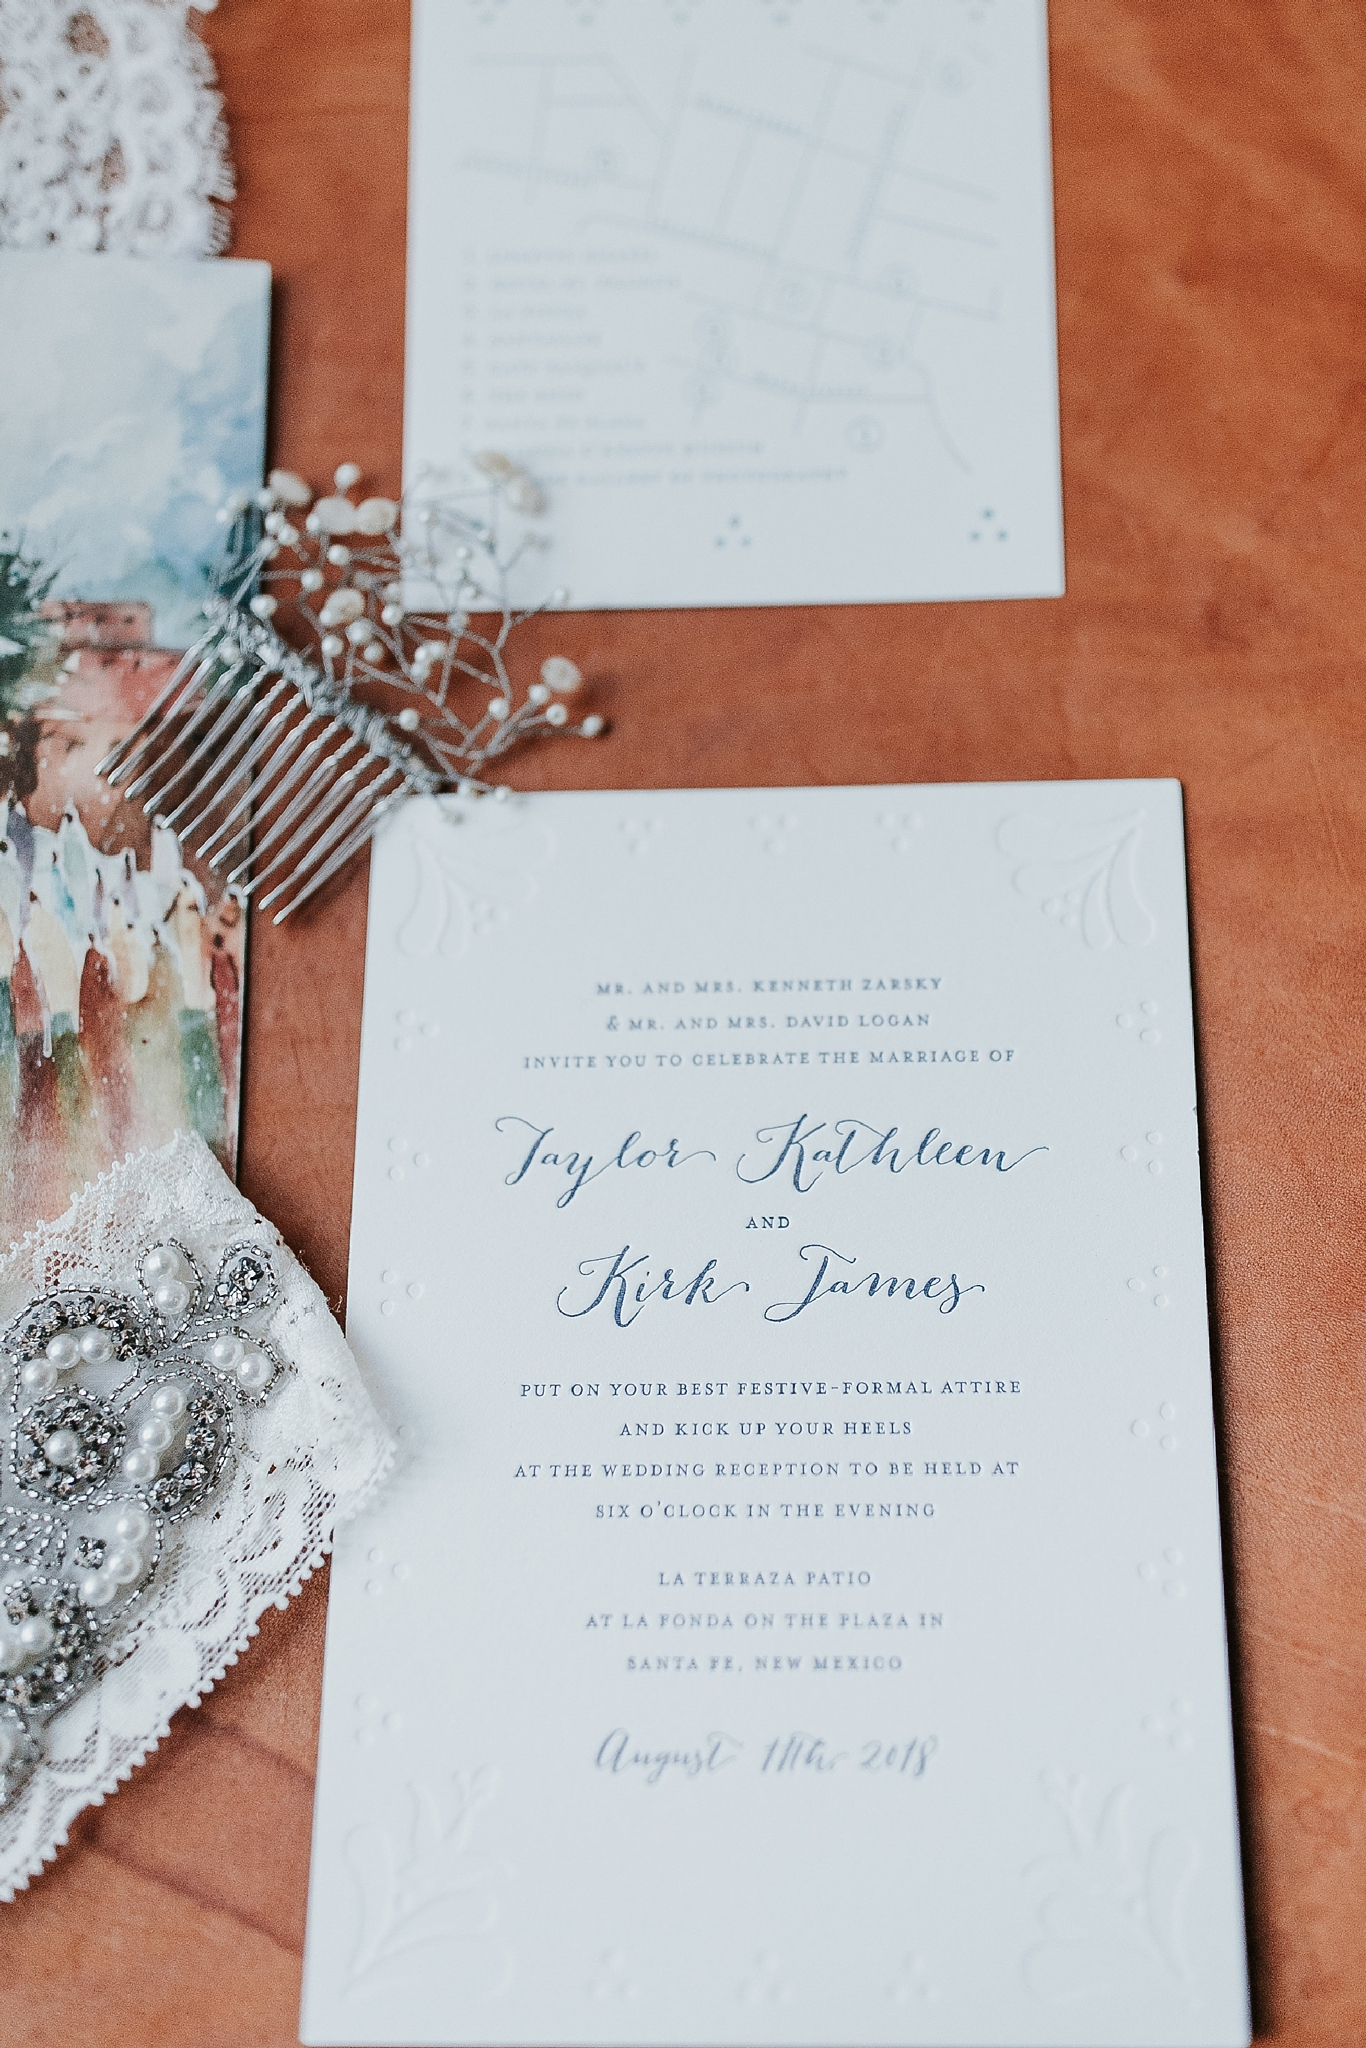 Alicia+lucia+photography+-+albuquerque+wedding+photographer+-+santa+fe+wedding+photography+-+new+mexico+wedding+photographer+-+new+mexico+wedding+-+wedding+invitations+-+invitation+suite+-+wedding+inspo_0003.jpg